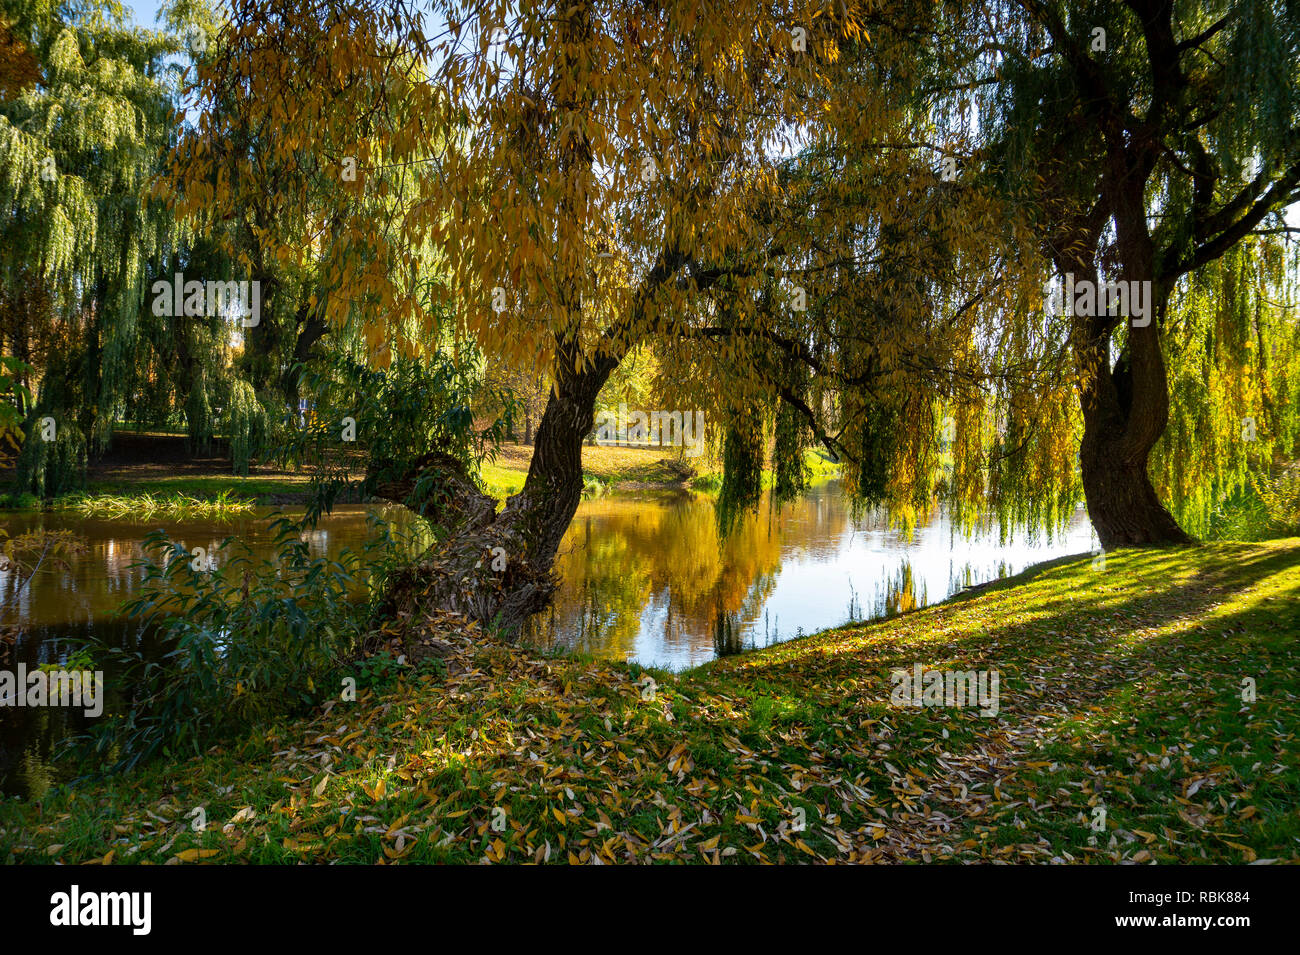 Calm autumn river with reflections of trees with colorful foliage viewed past a osiers branches and leaves - Stock Image